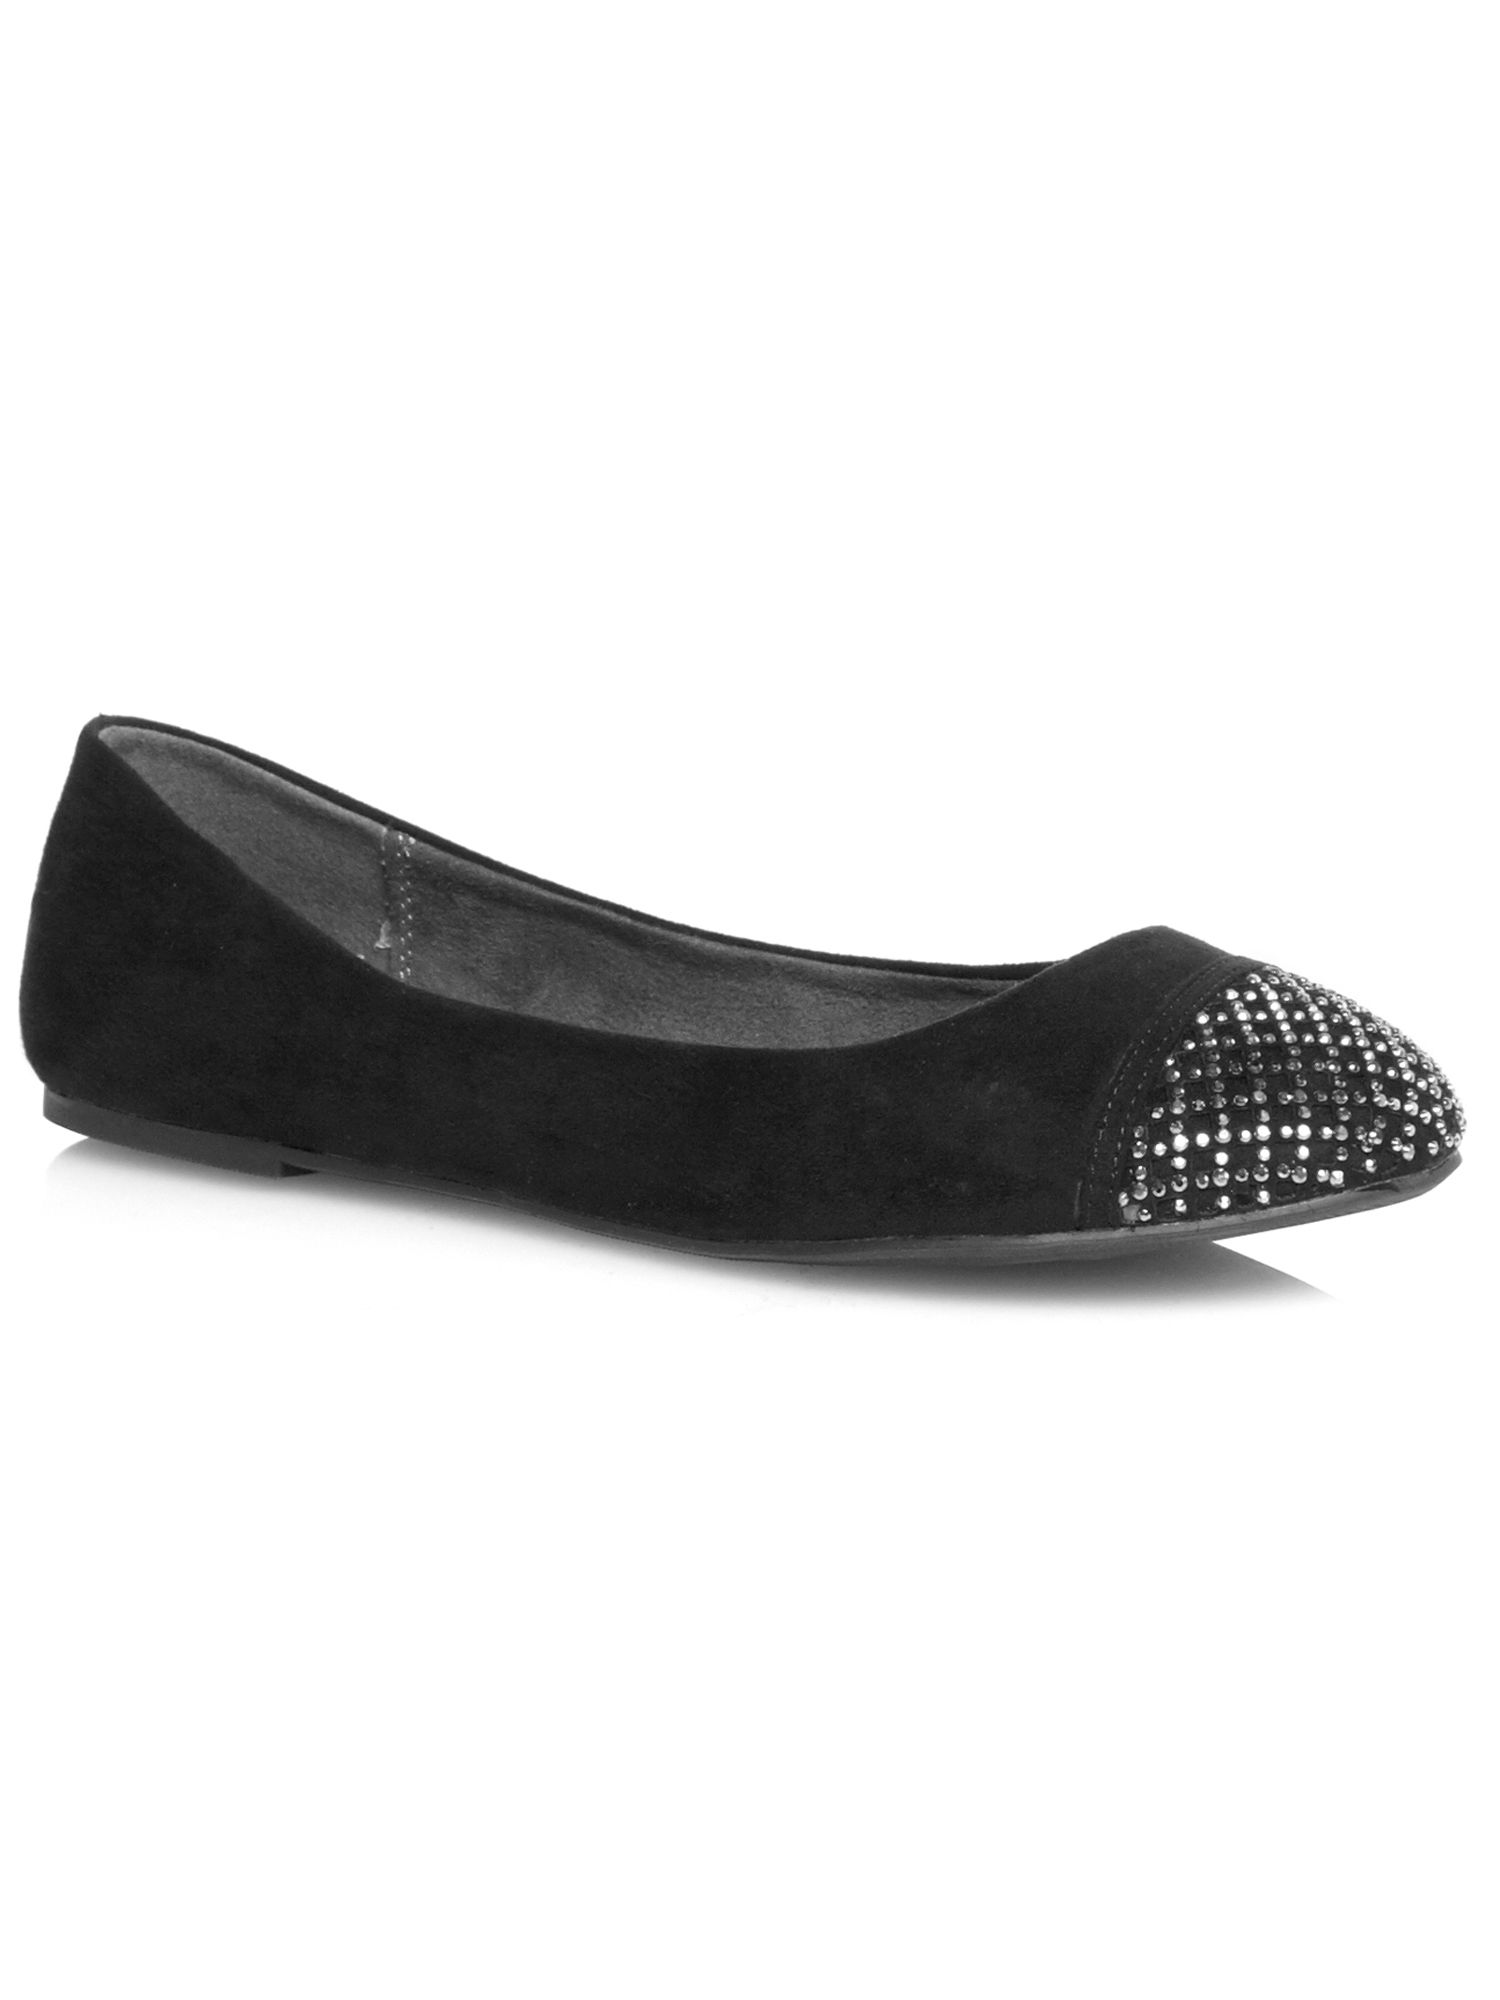 Black beaded toe pump